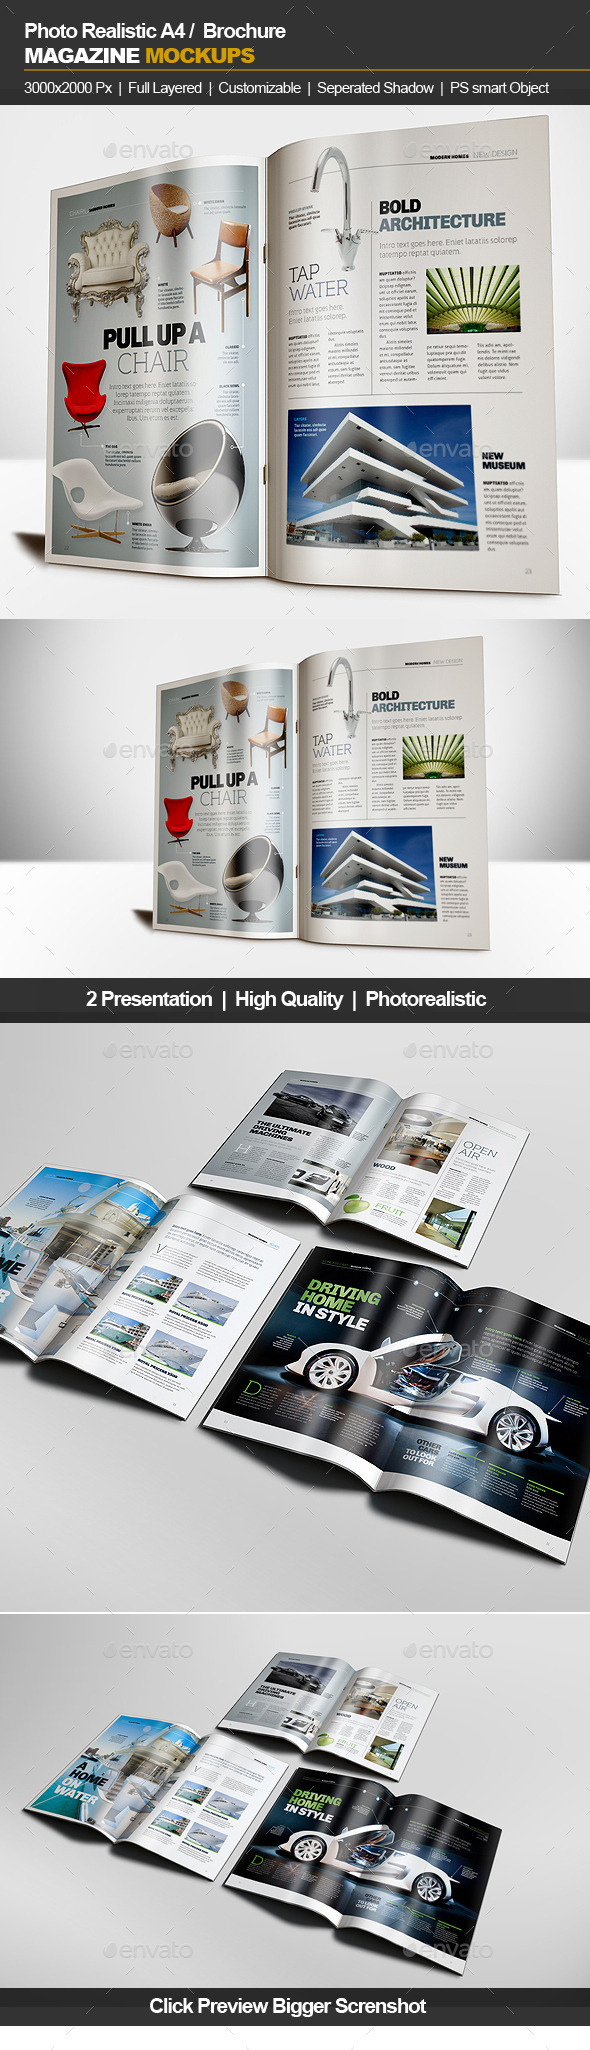 GraphicRiver A4 Brochure Magazine Mockup 11862139